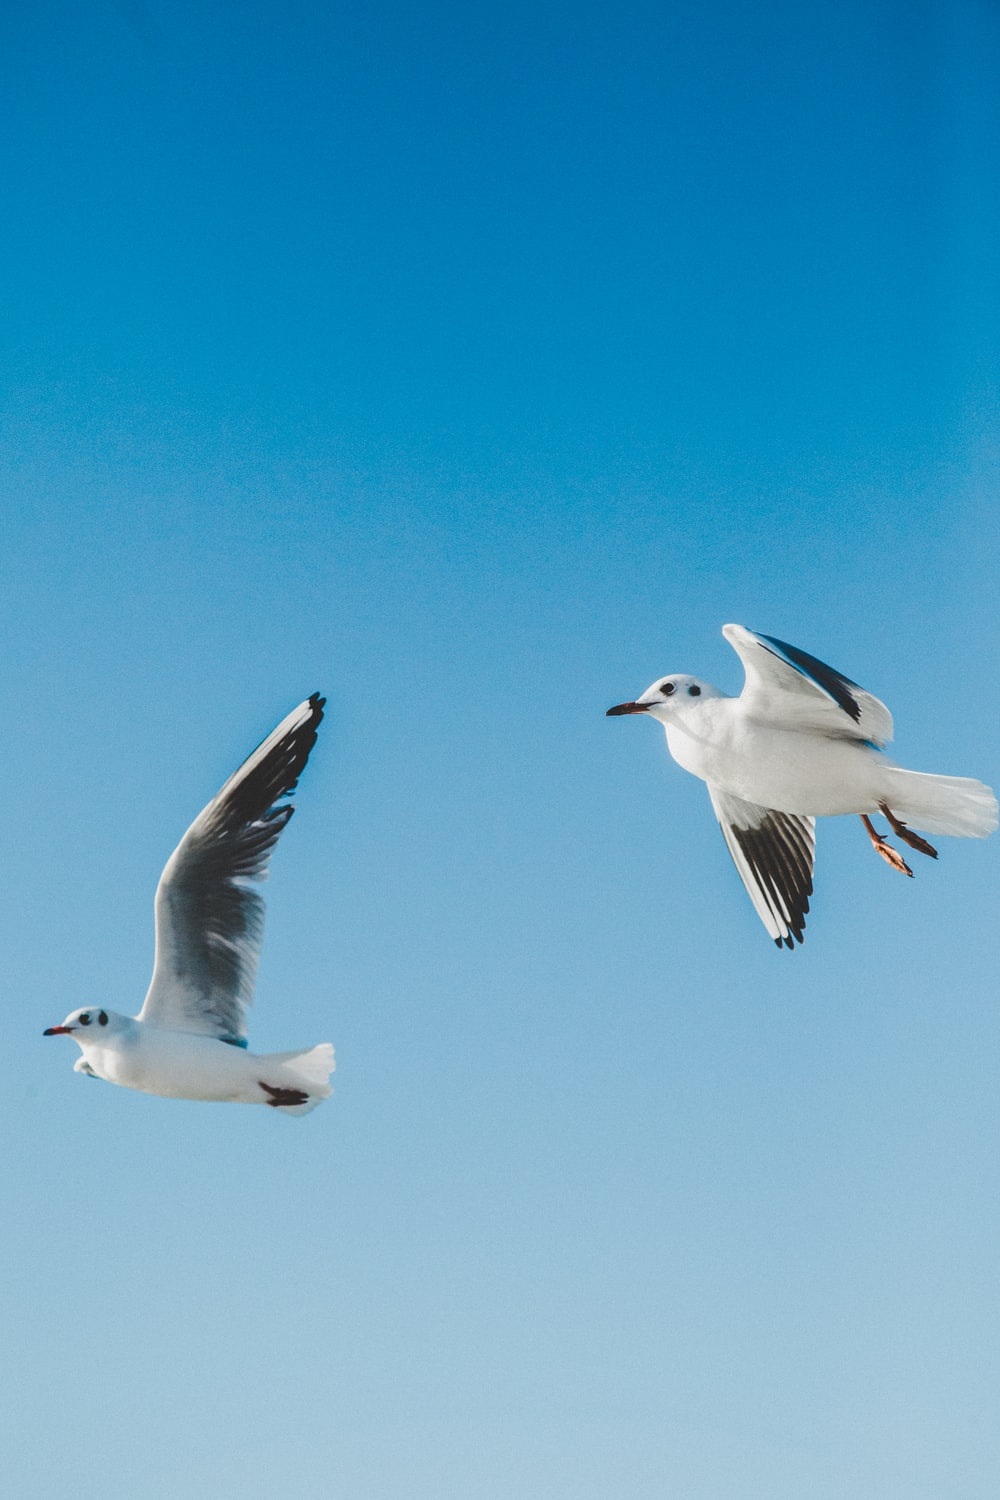 white and black seagull mid air